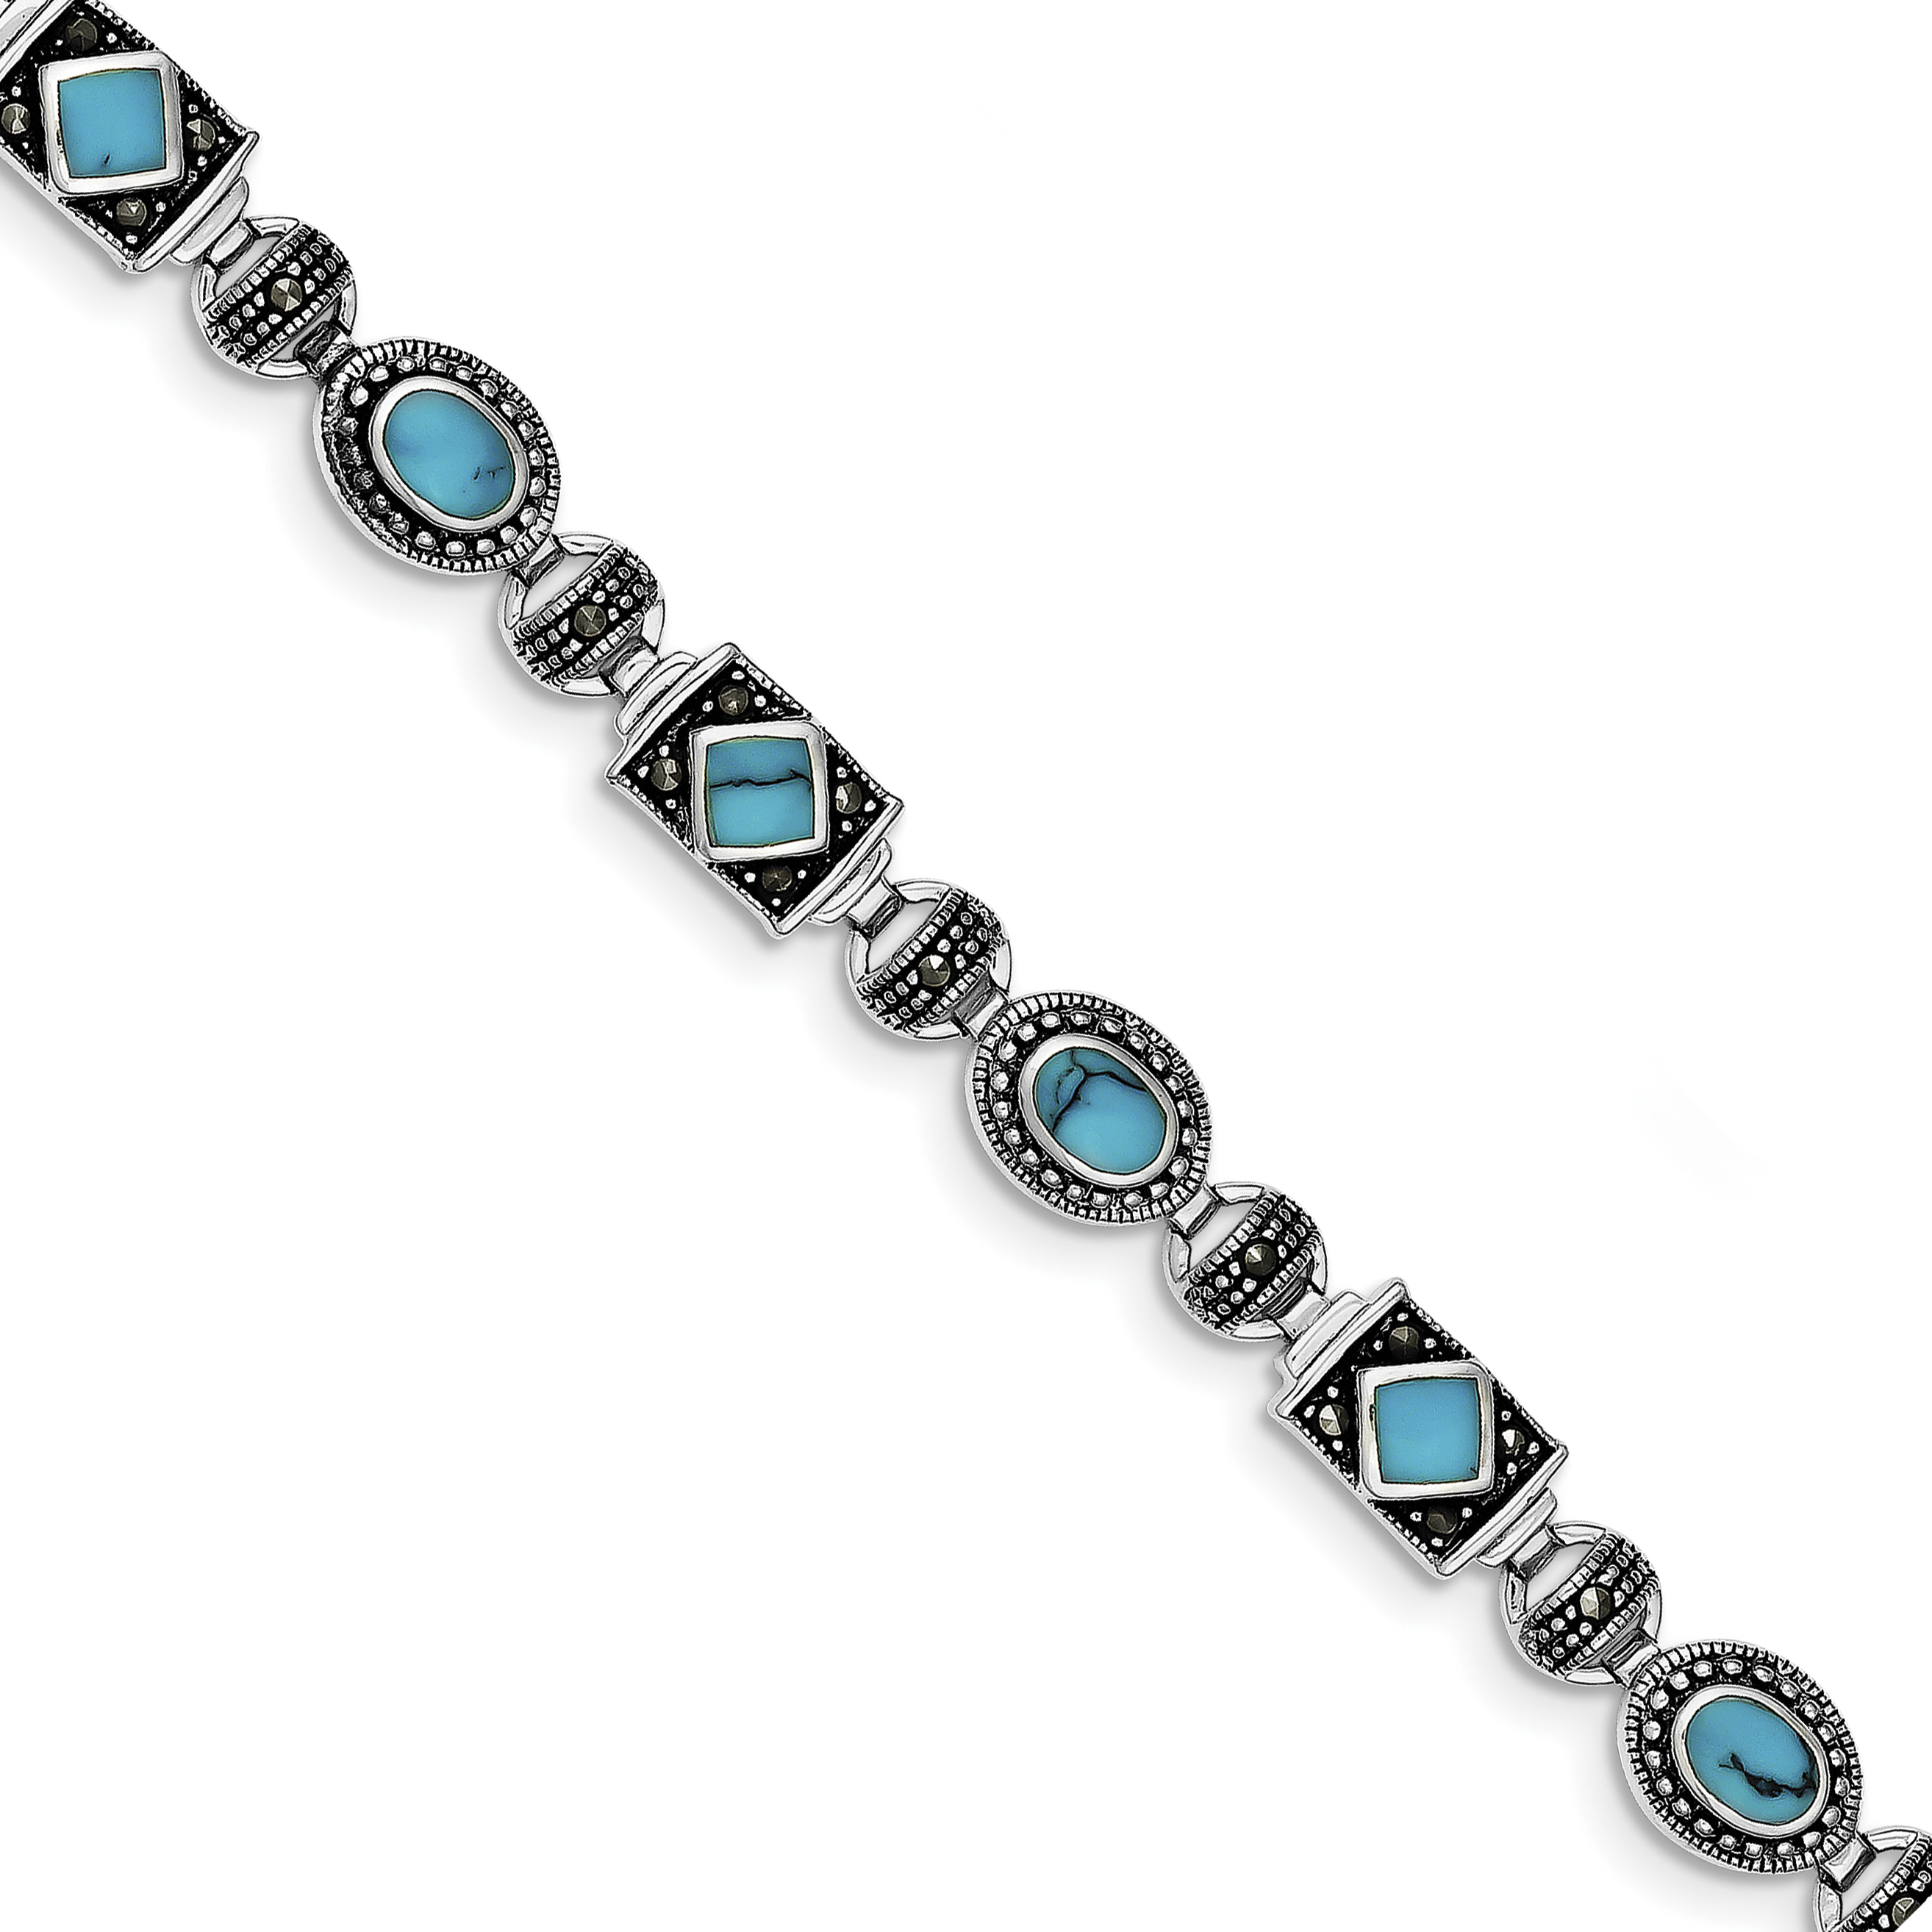 925 Sterling Silver Rhodium-plated Synth Turquoise and Marcasite Bracelet by